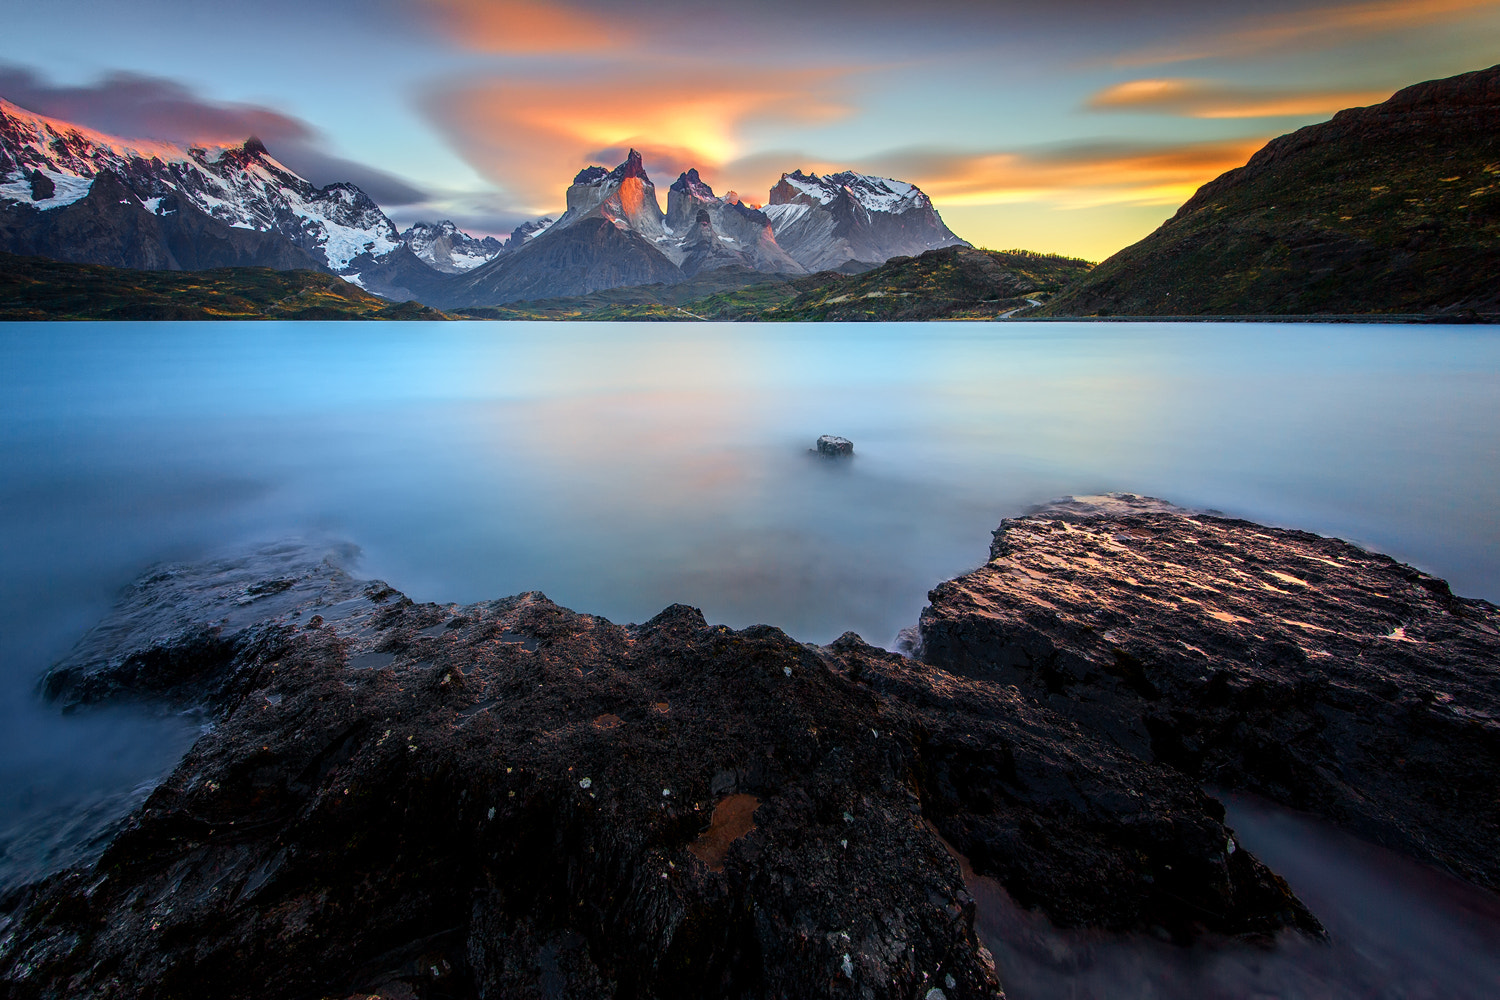 Photograph Cuernos Del Paine by OaKy Isra on 500px